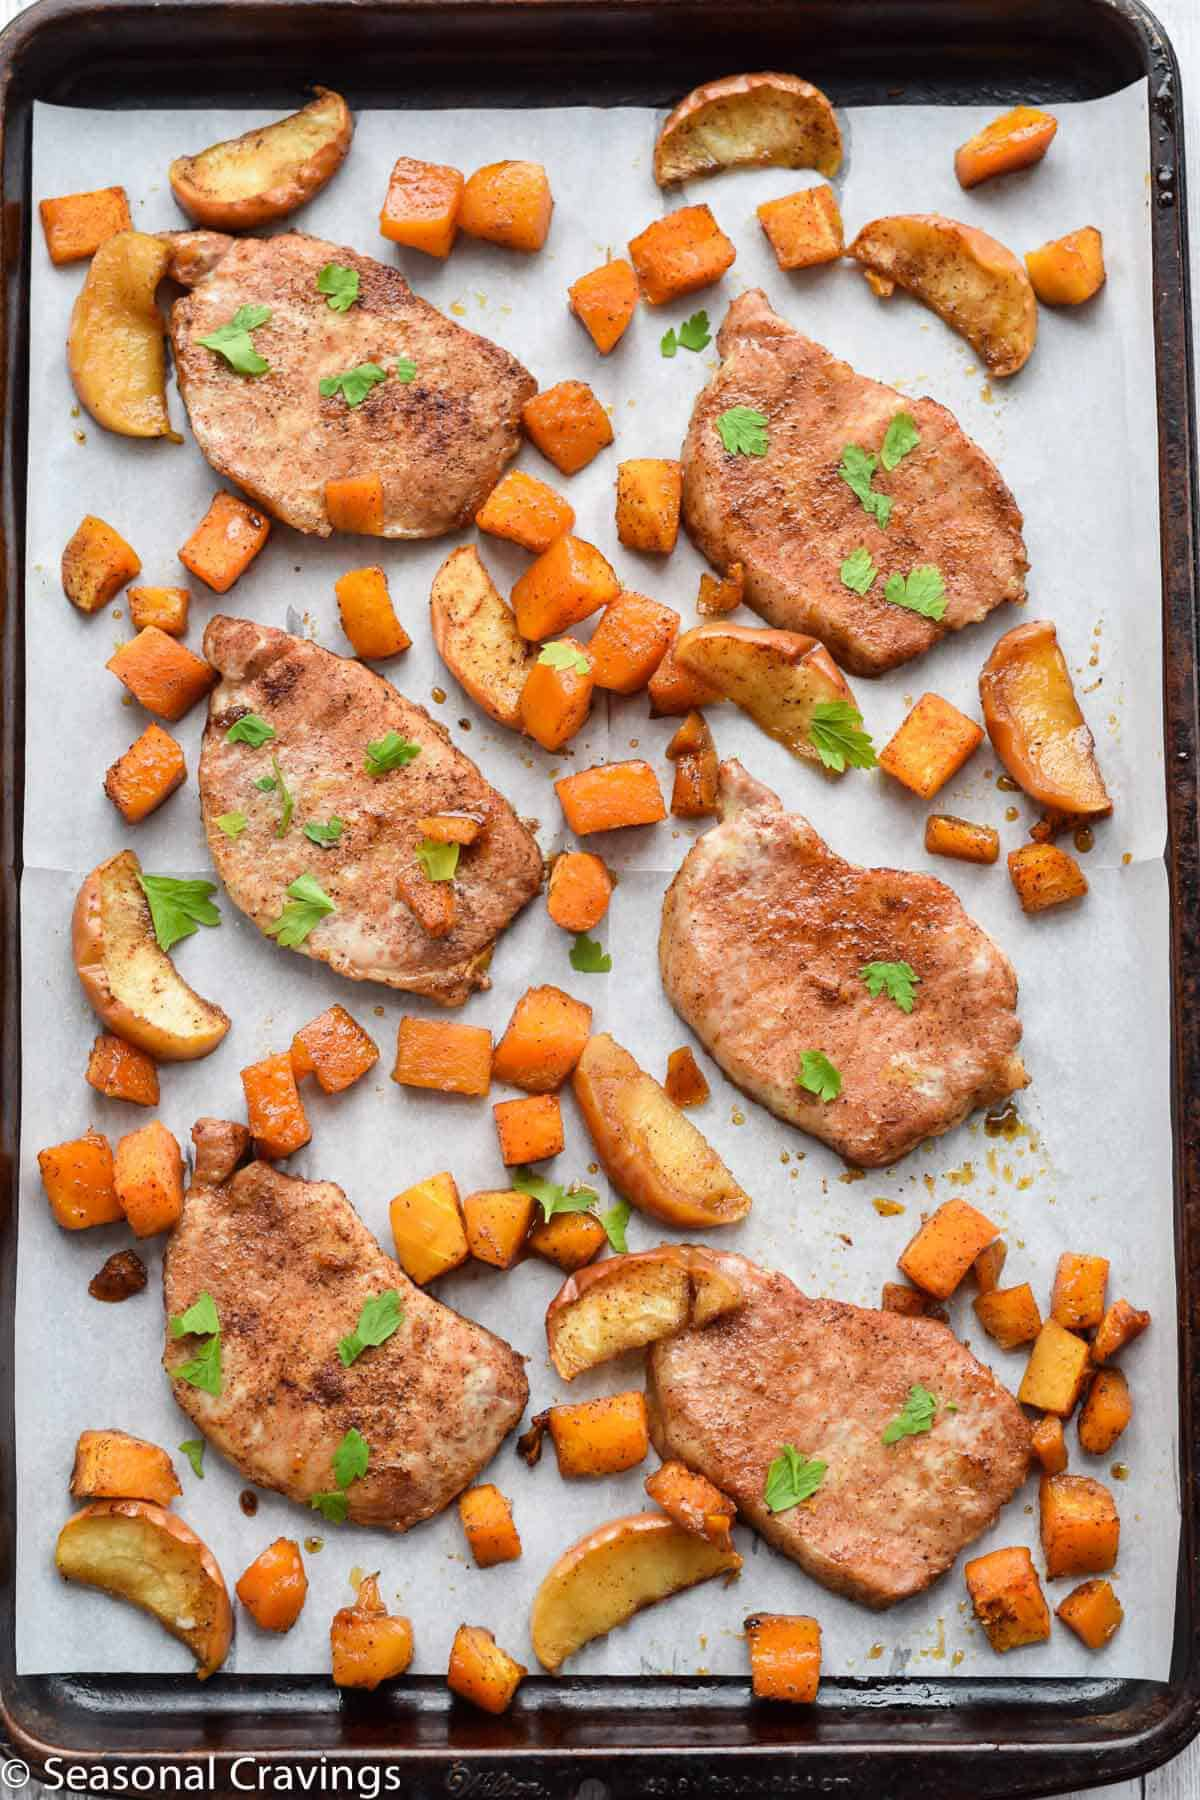 Sheet Pan Brown Sugar Pork Chops on parchment paper with parsley